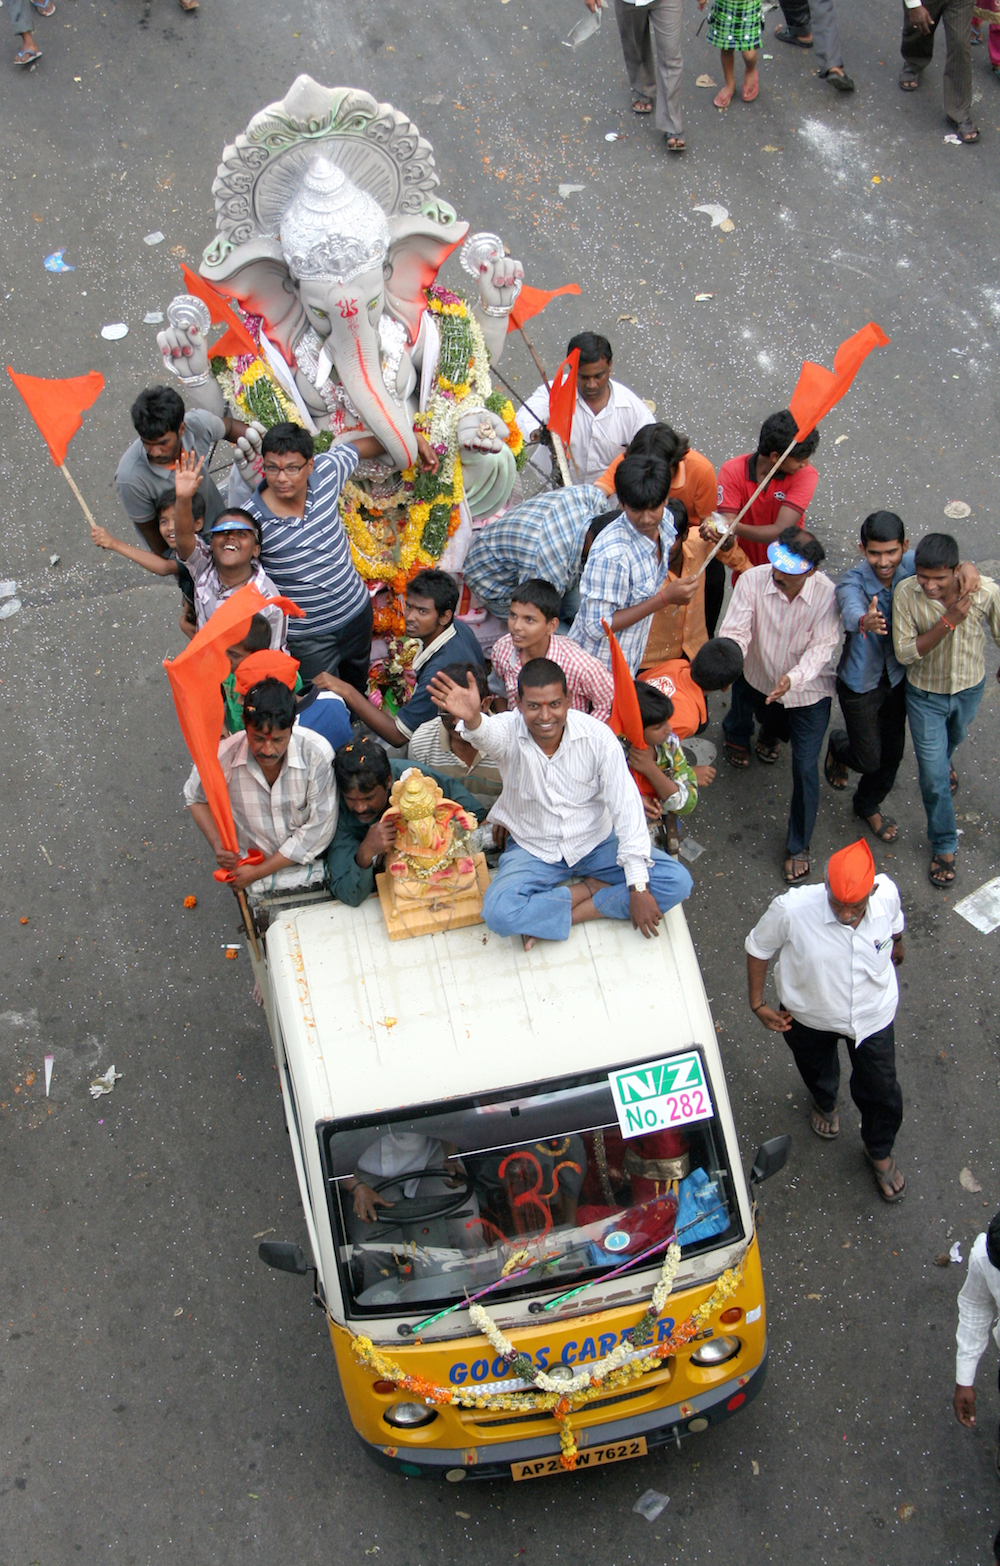 Worshippers transporting the Ganesha statues in Hyderabad © reddees / Shutterstock.com